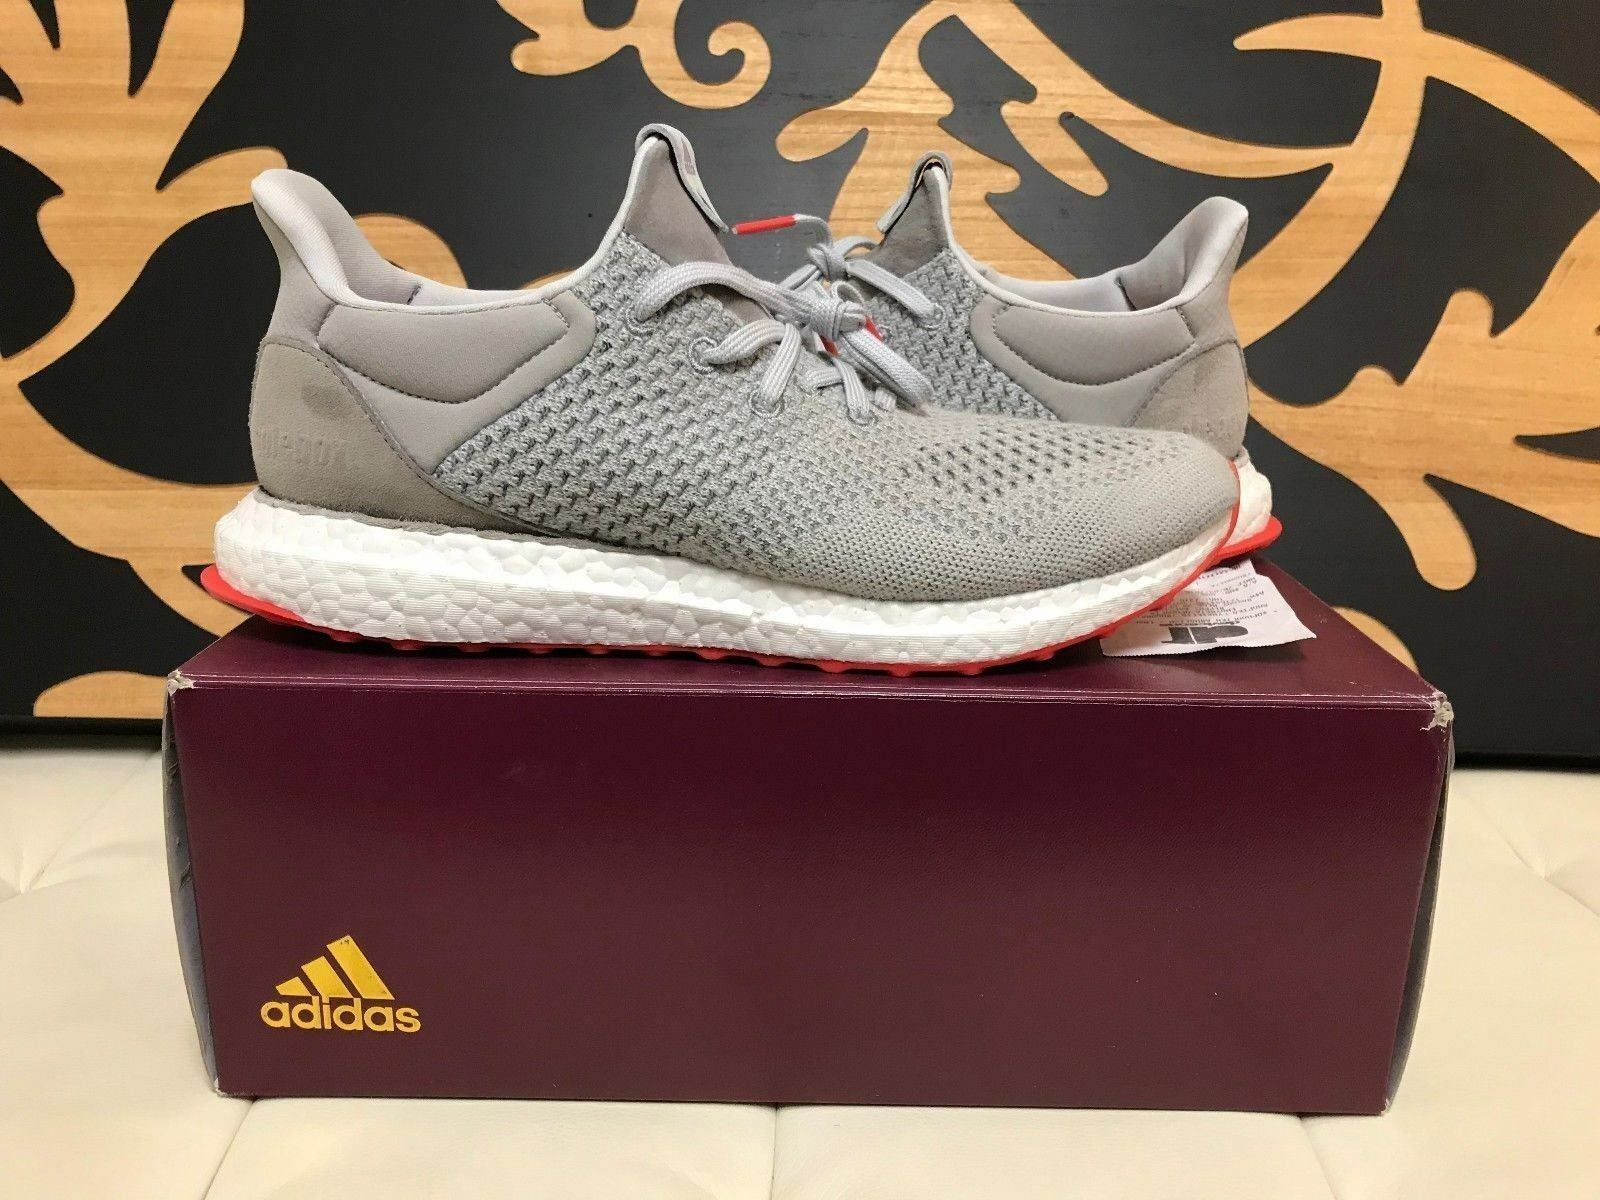 2018 Solebox x adidas Ultra Boost Uncaged size 9 USED with receipt